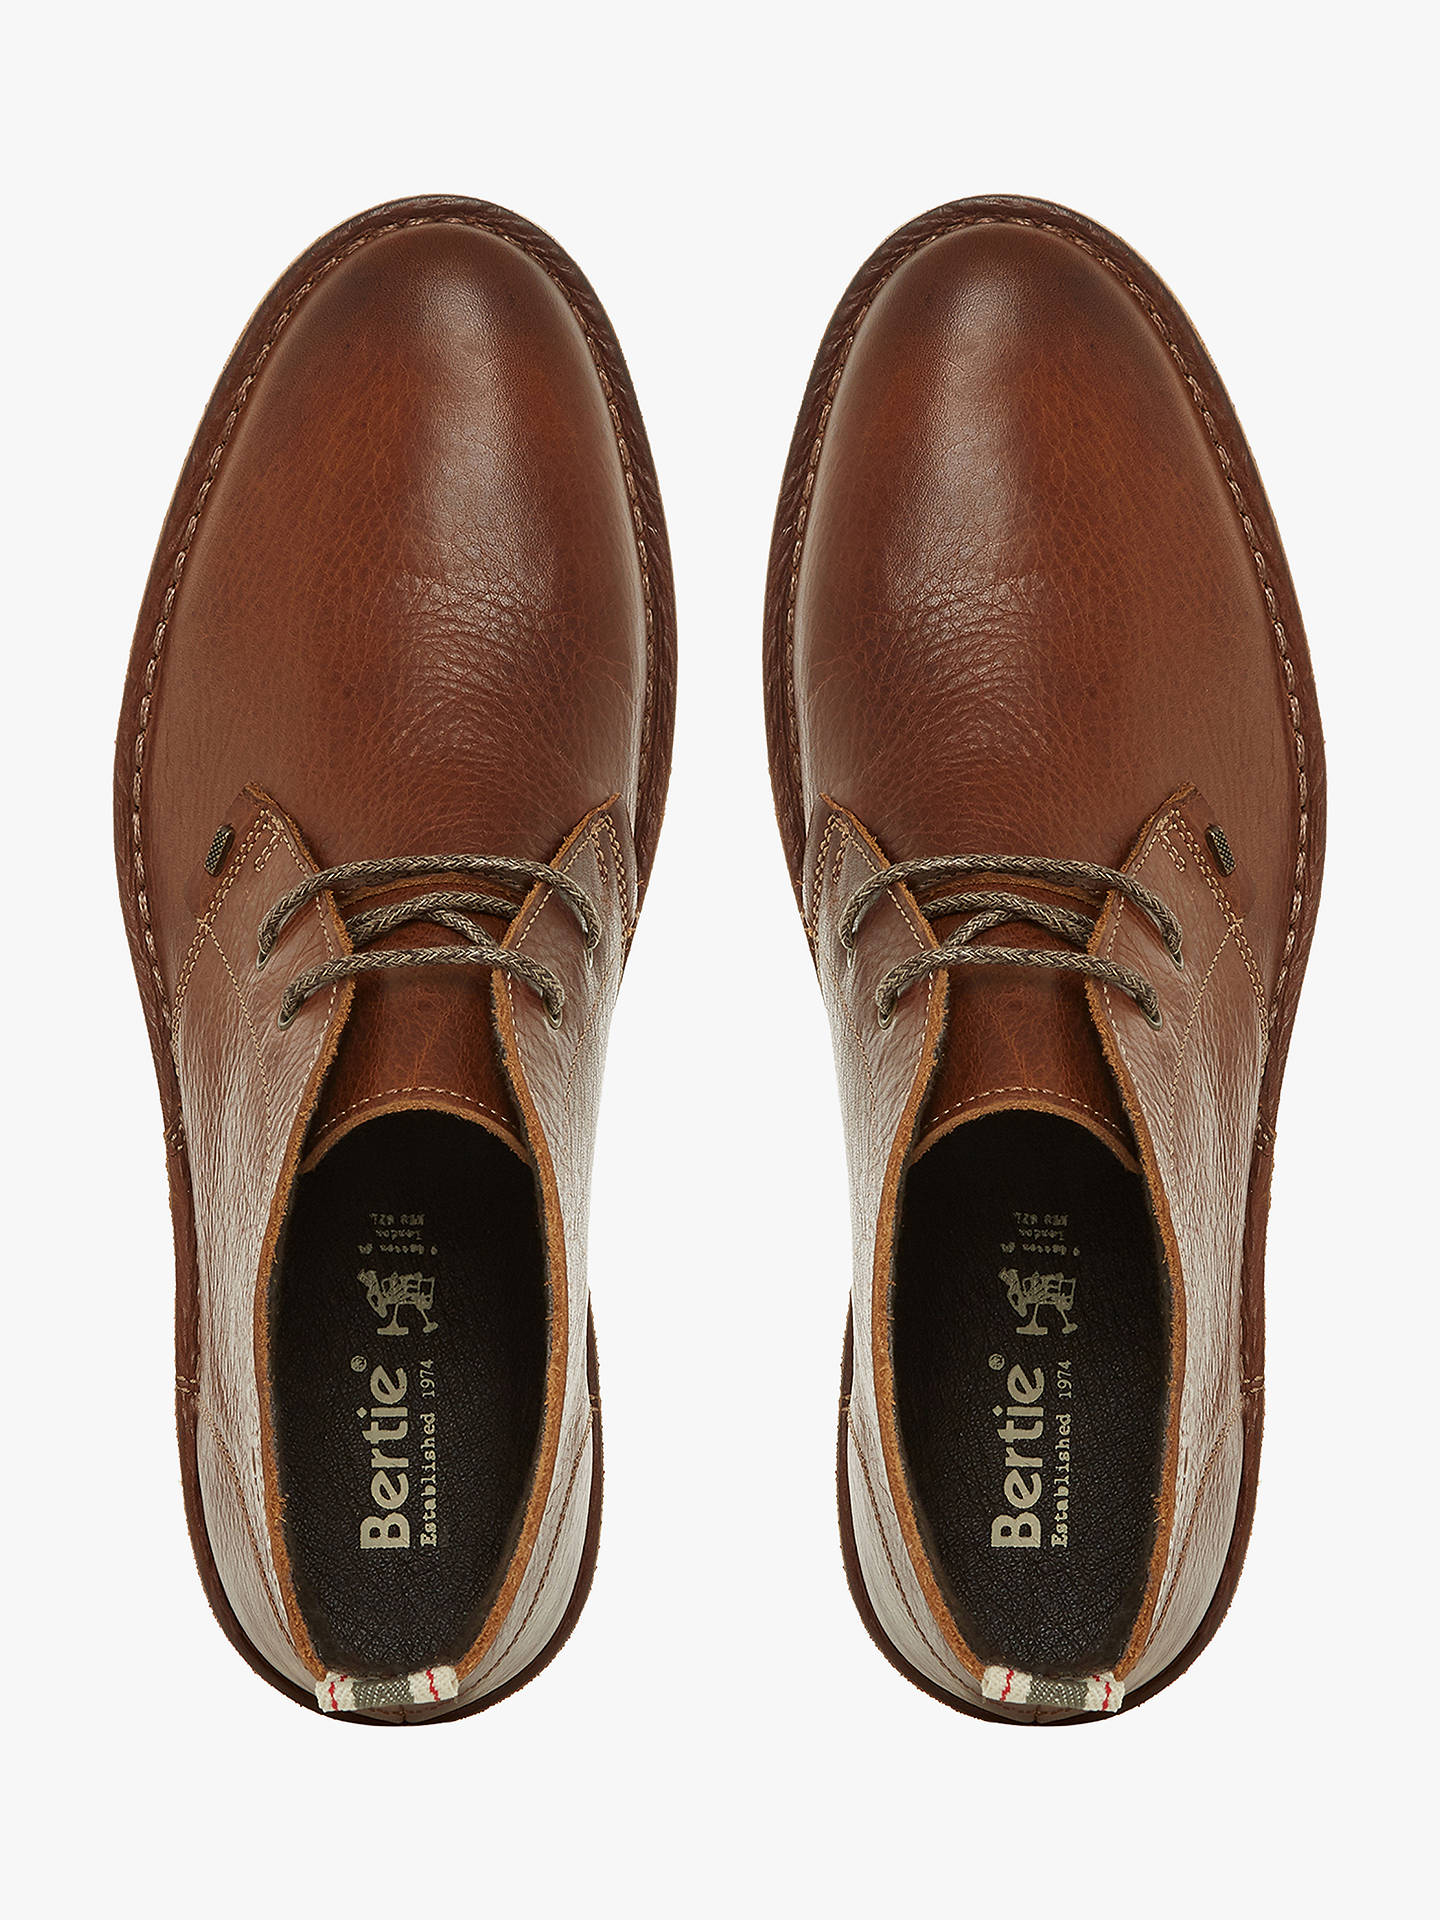 BuyBertie Castle Leather Desert Boots, Tan, 11 Online at johnlewis.com